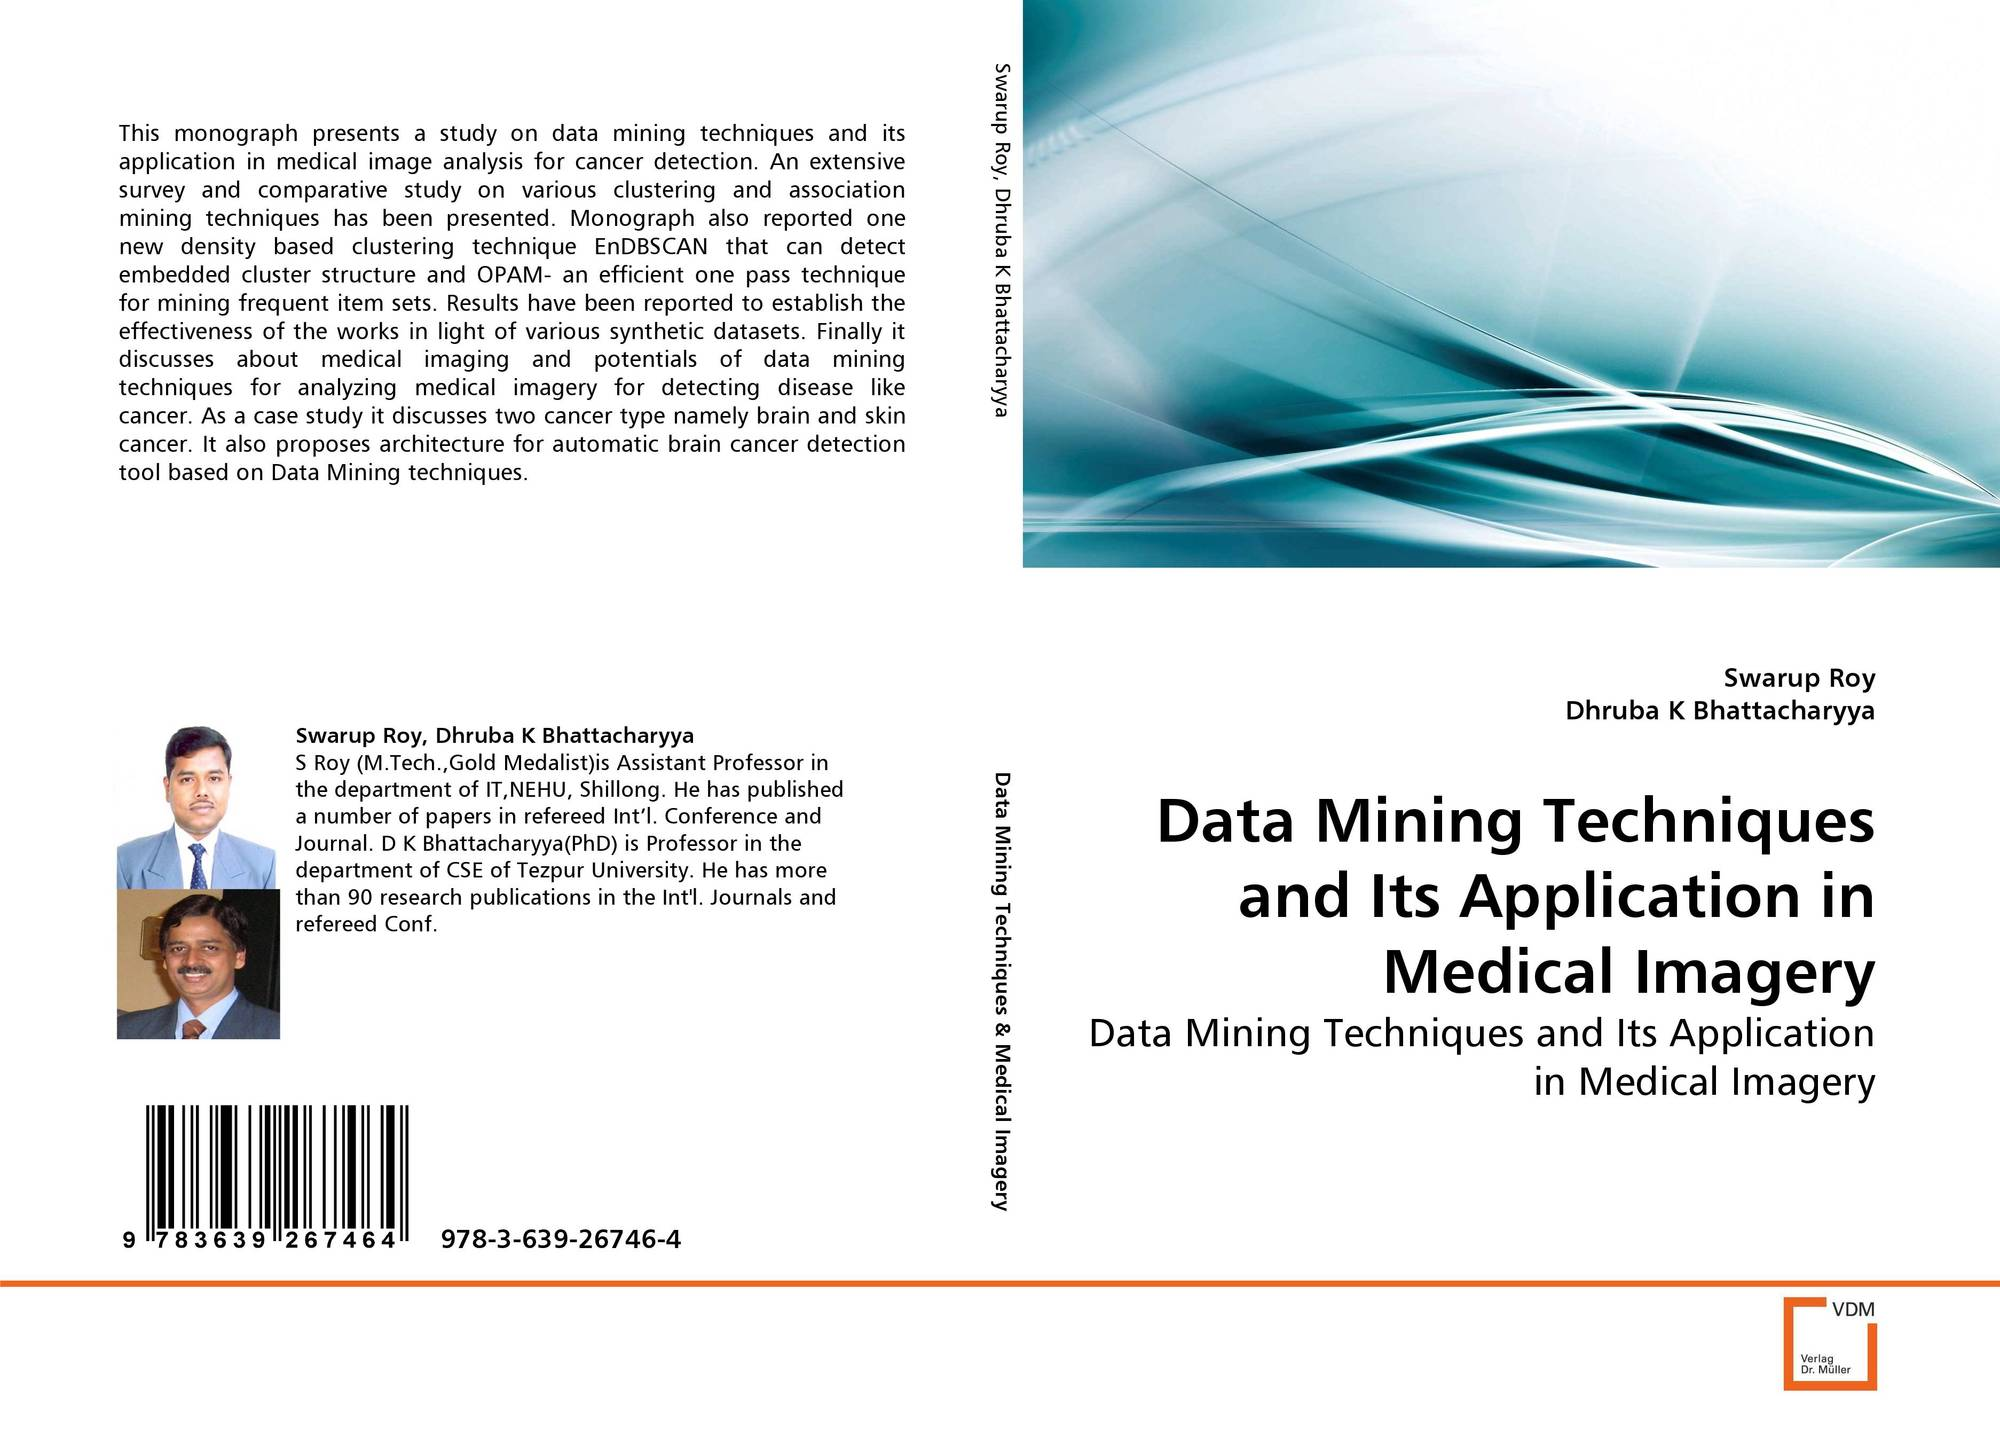 Data Mining Techniques and Its Application in Medical